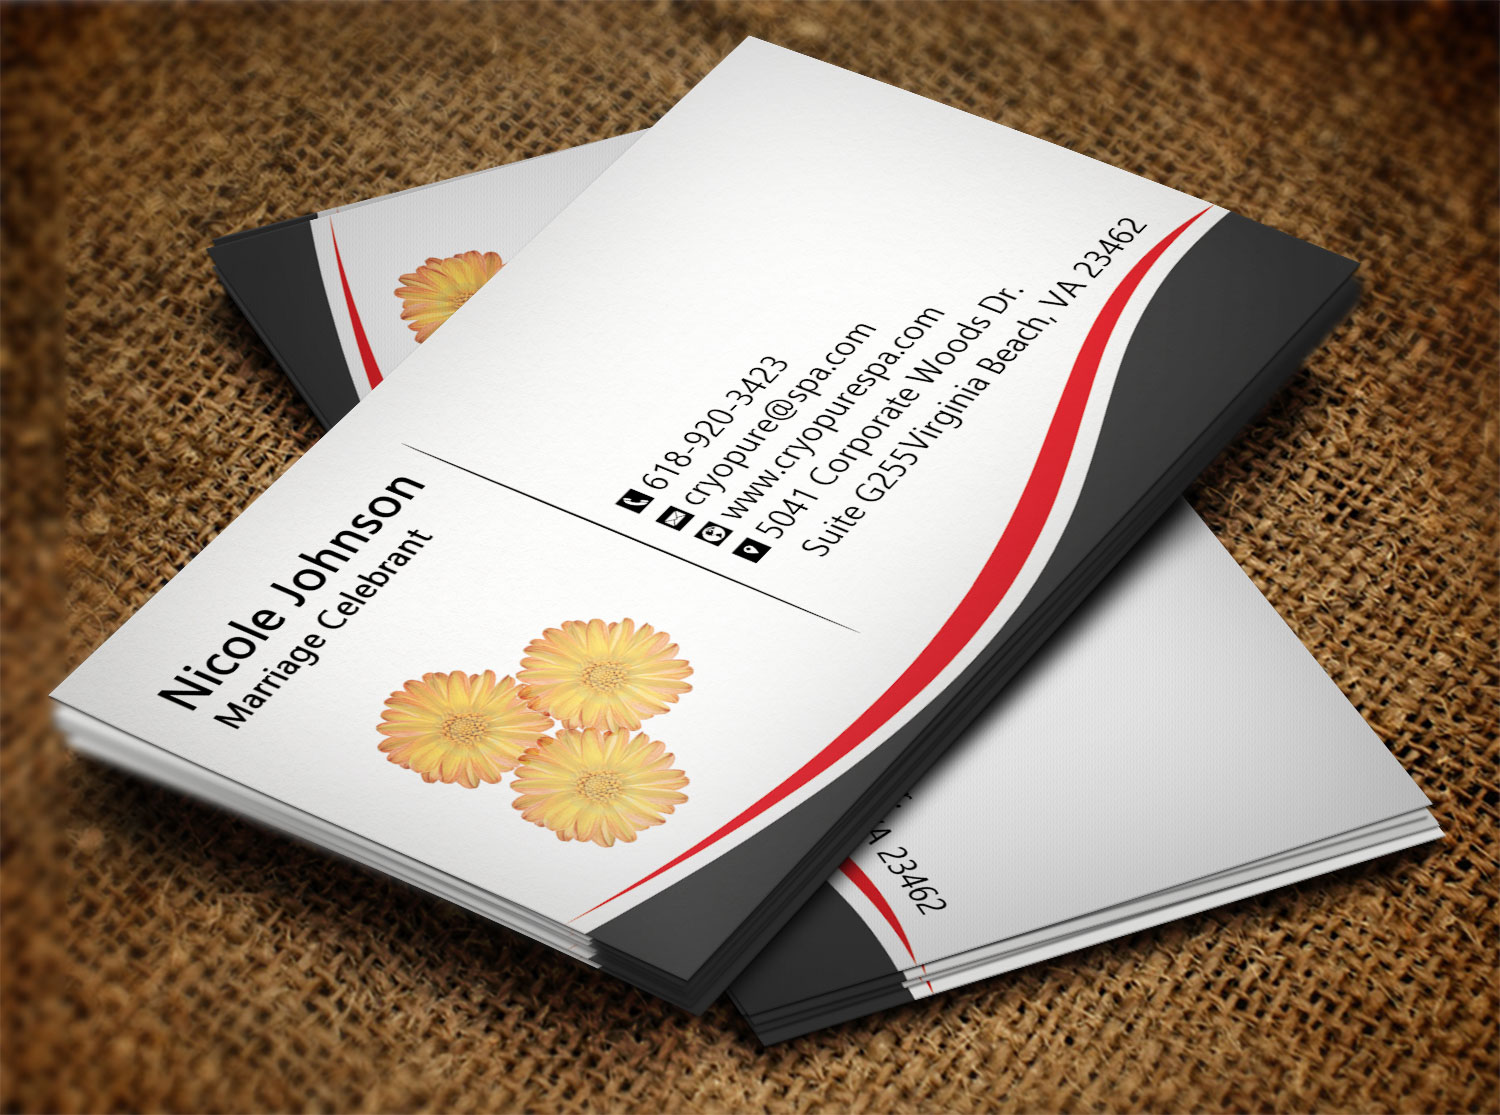 Business card design for northern beaches conveyancing service by business card design by creation lanka for northern beaches conveyancing service design 9211224 reheart